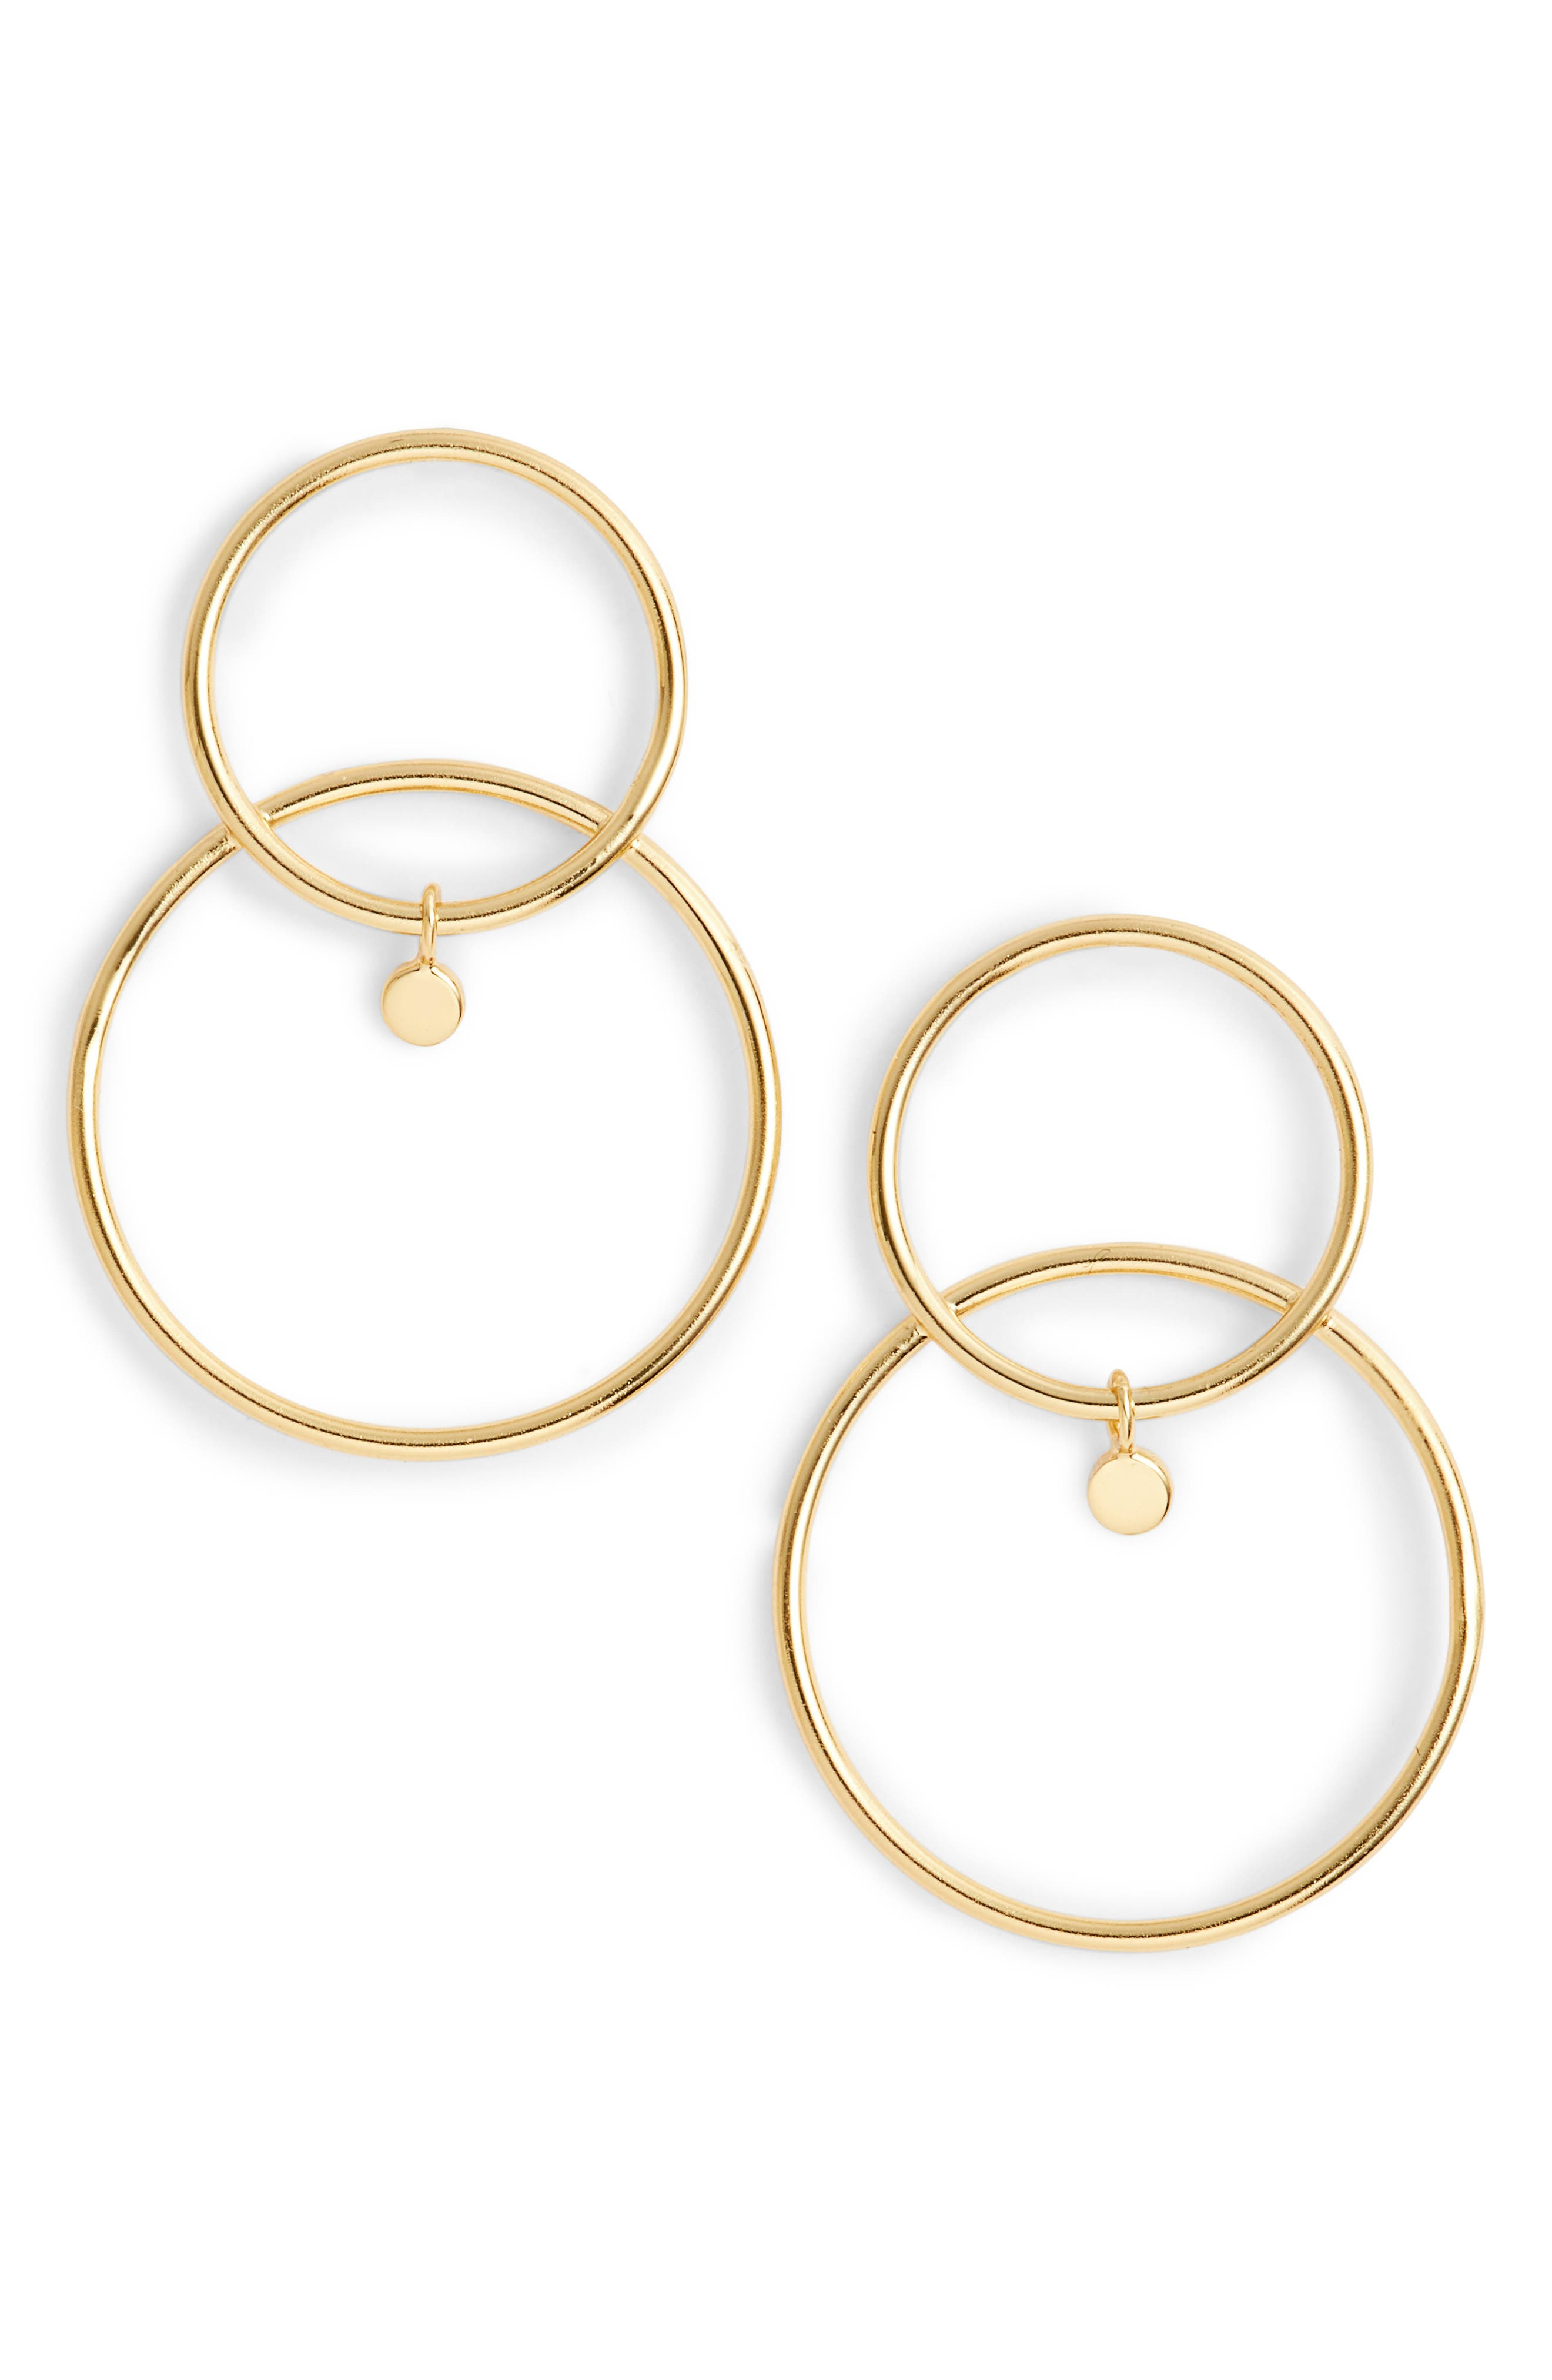 Double Open Ring Drop Earrings,                             Main thumbnail 1, color,                             Gold